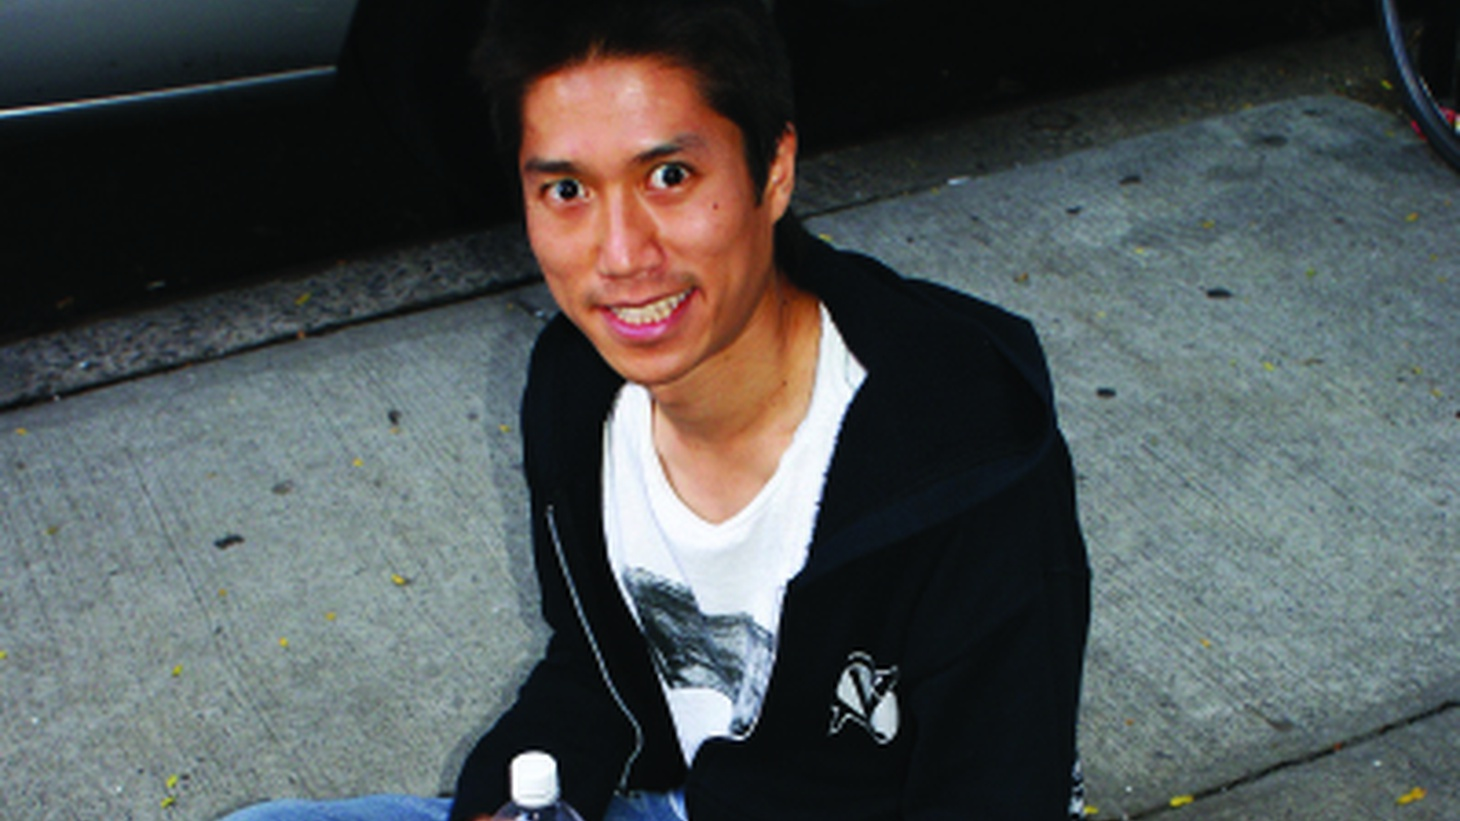 An interview with novelist Tao Lin on the pace of his speaking, with interjections from musicians Kool AD and Kitty and a short discussion with critic Christian Lorentzen. CONTAINS ADULT LANGUAGE.